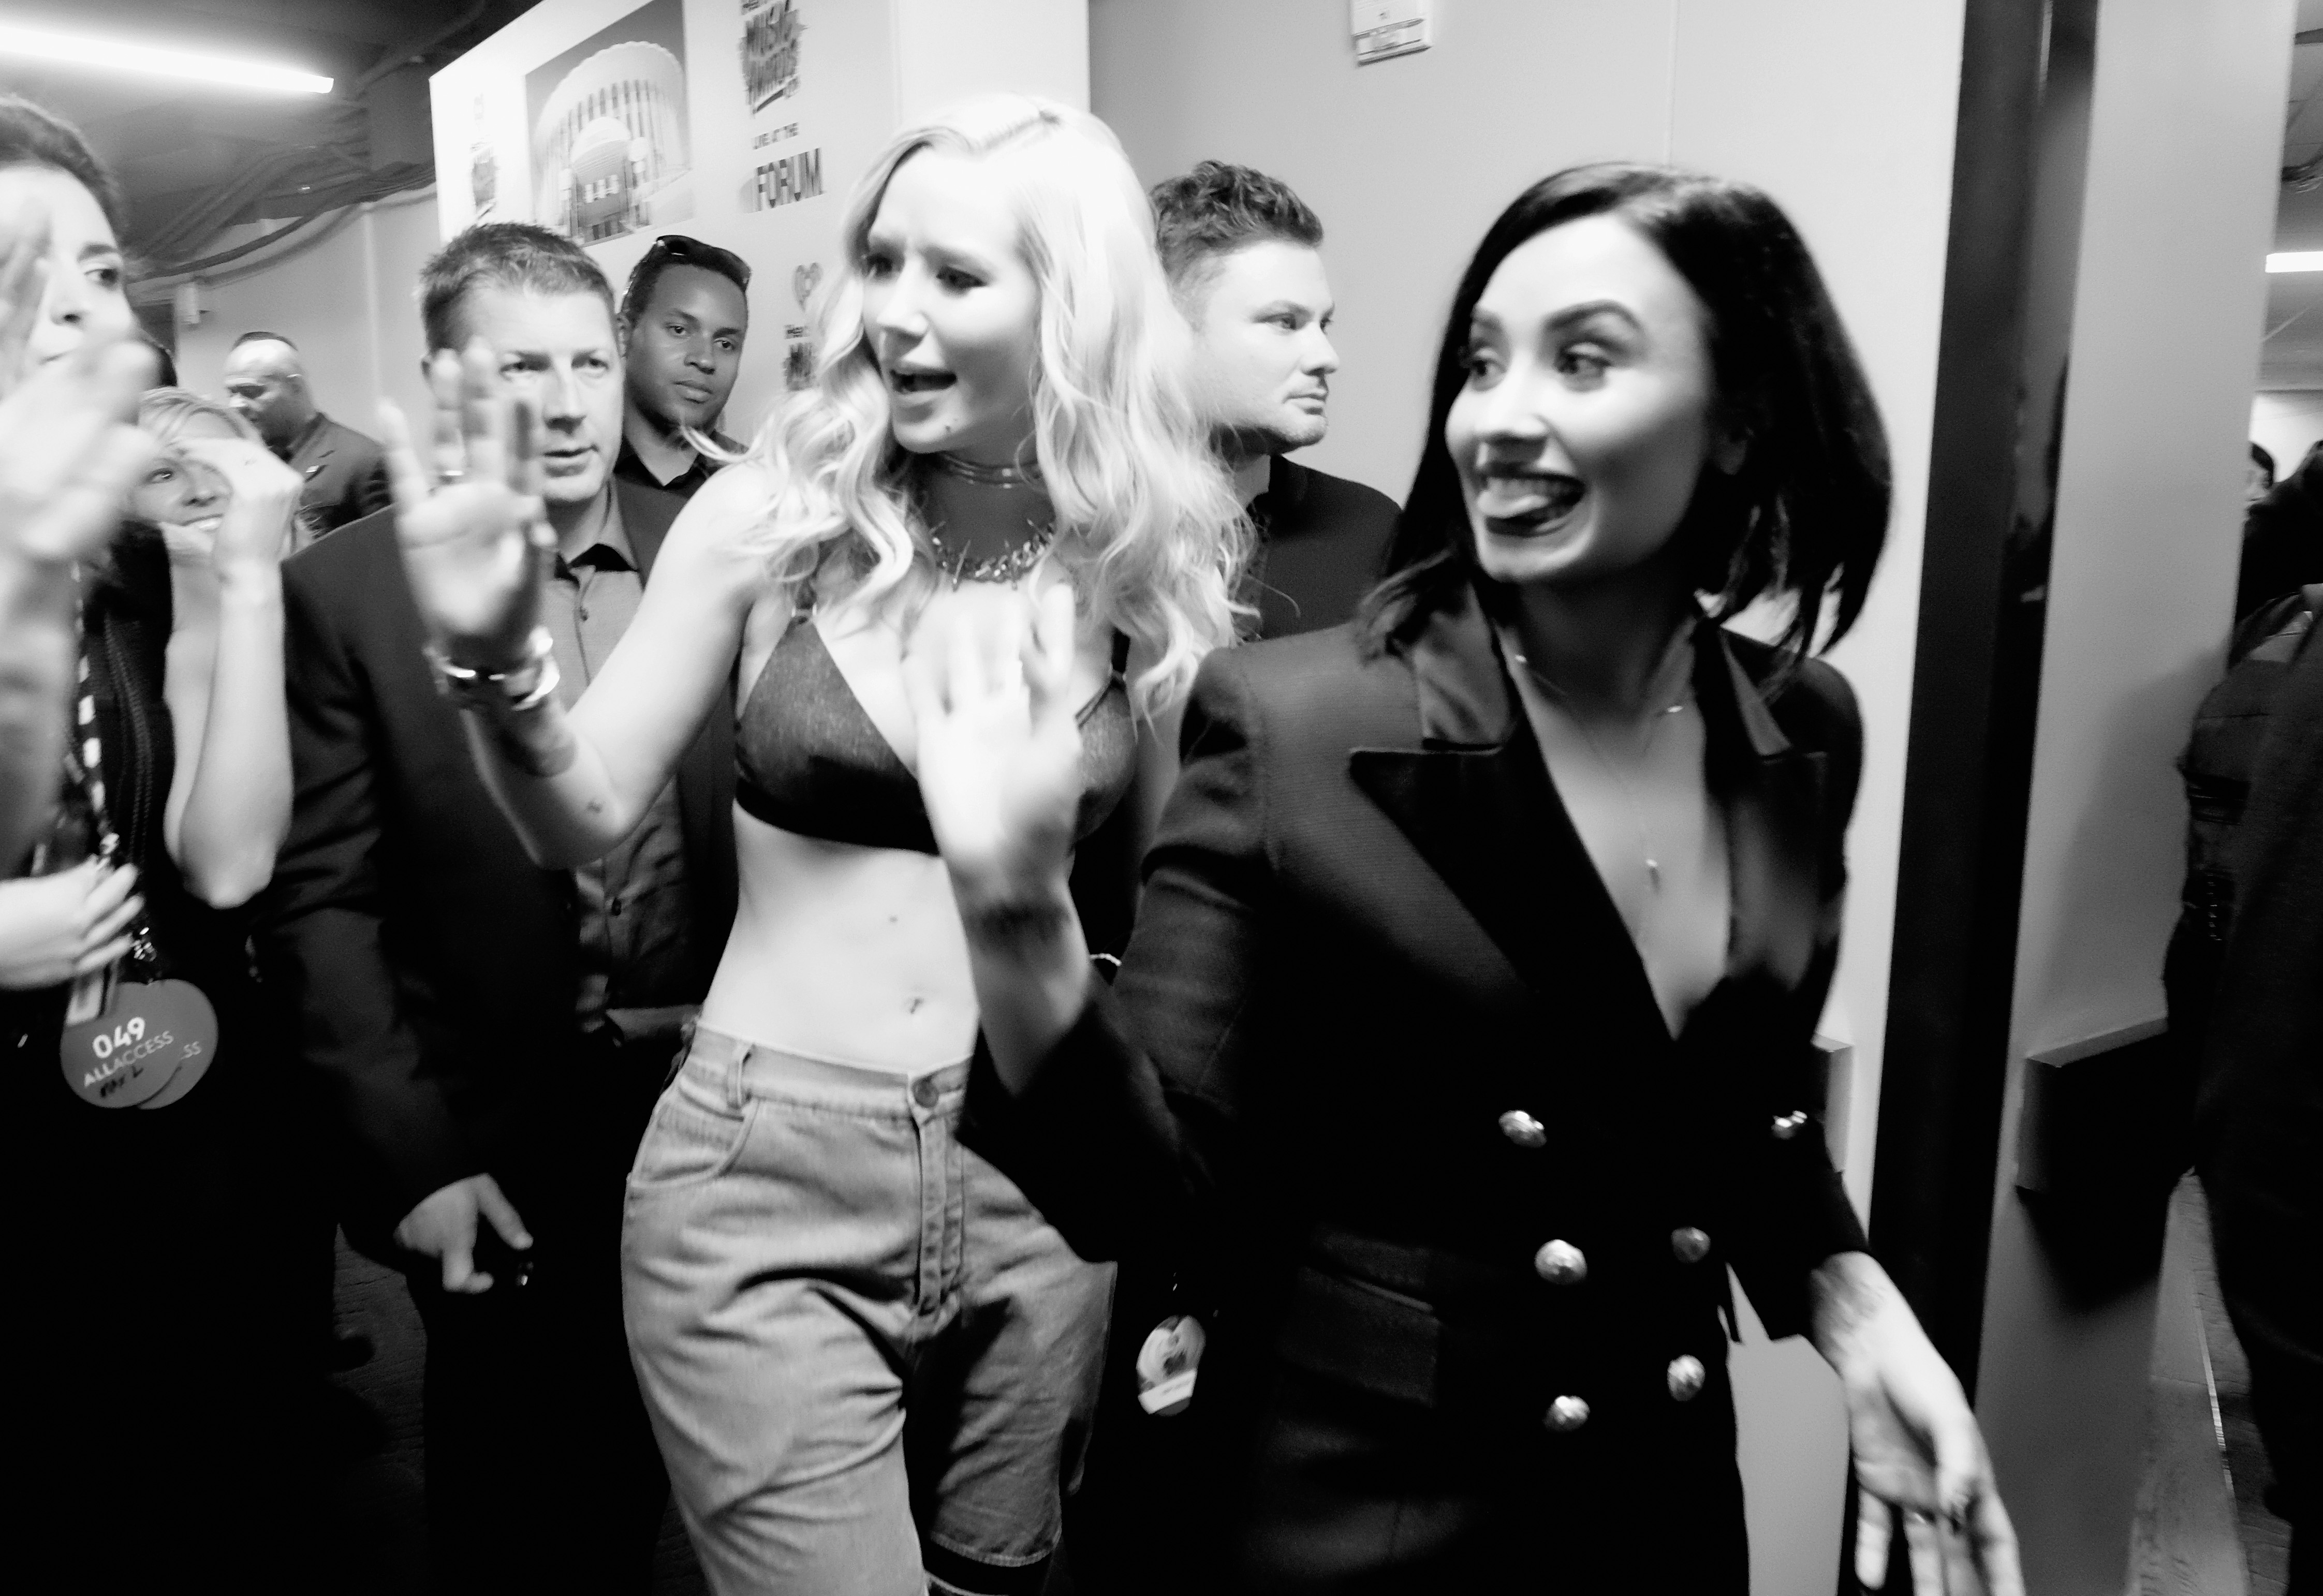 Recording artists Iggy Azalea and Demi Lovato attend the iHeartRadio Music Awards at The Forum on April 3, 2016 in Inglewood, California.